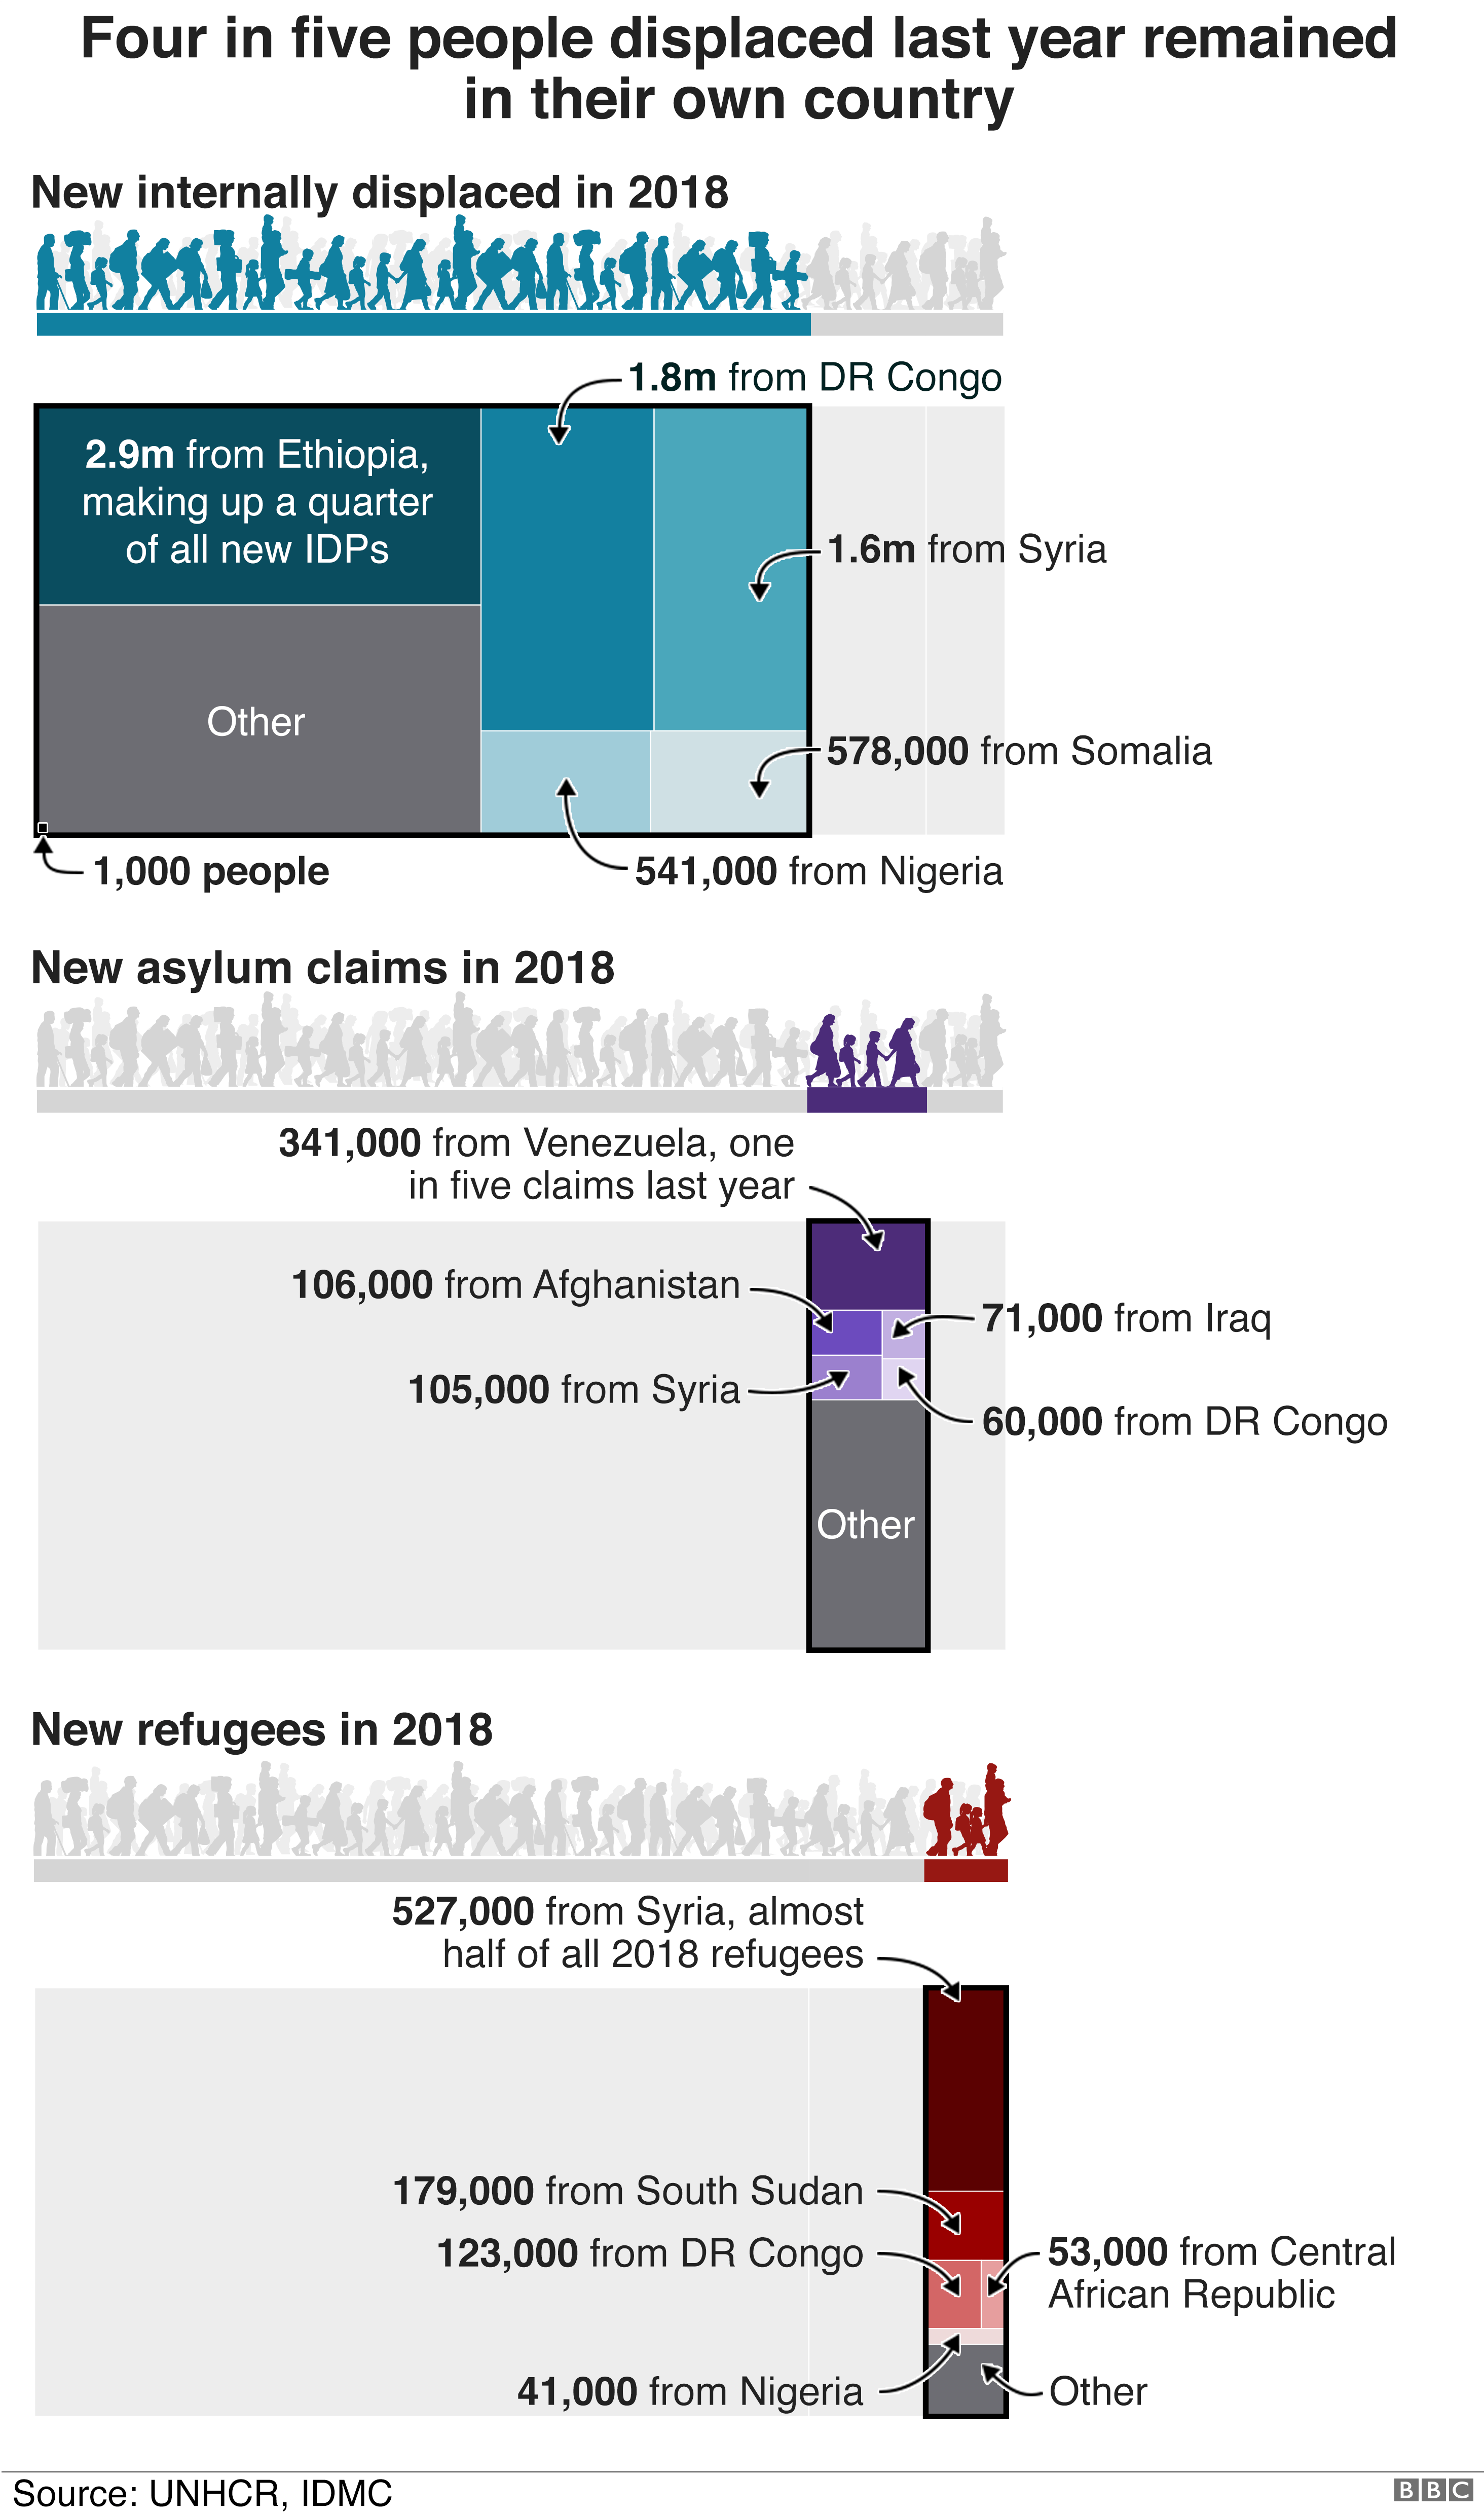 Graphic showing how millions of people were on the move in 2018, with the country with most IDPs being Ethiopia, the highest number of most asylum seekers coming from Venezuela and most refugees originating from Syria